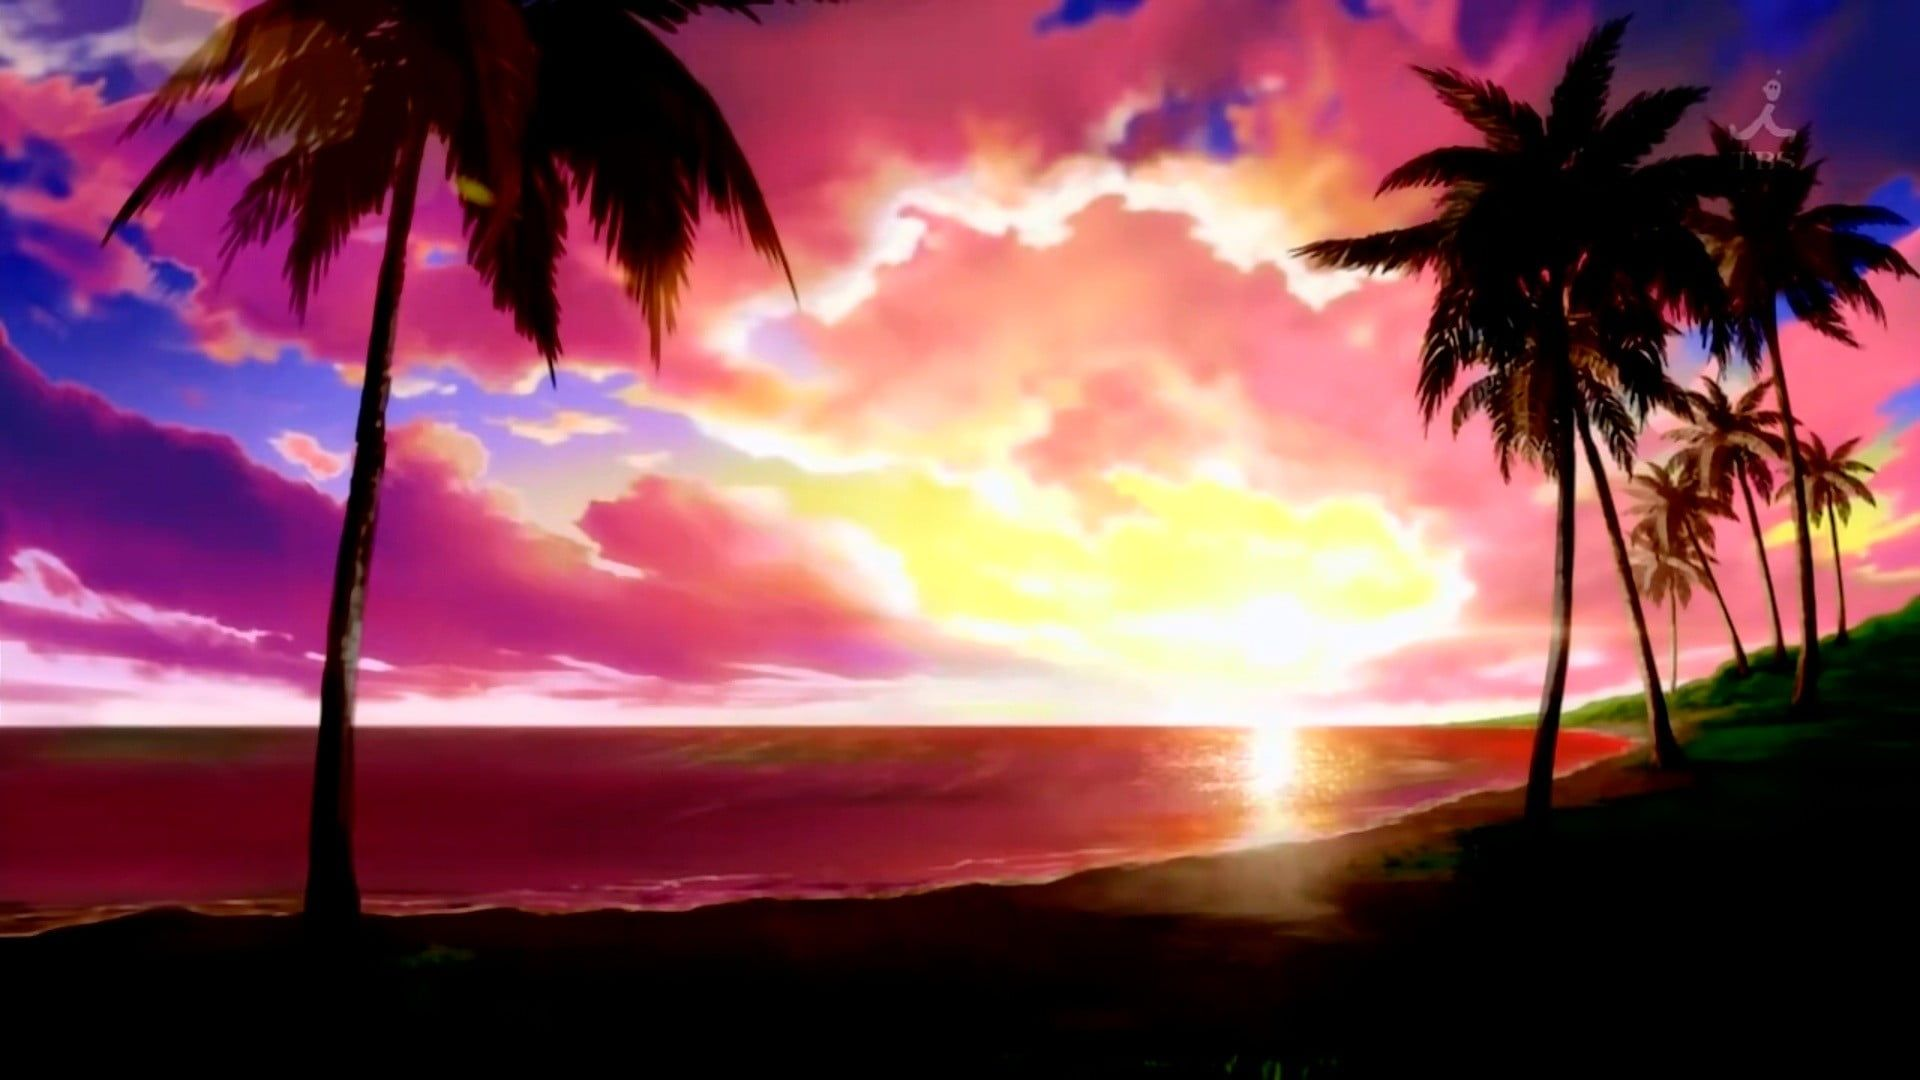 Anime Sunset 1920x1080 Wallpapers - Wallpaper Cave